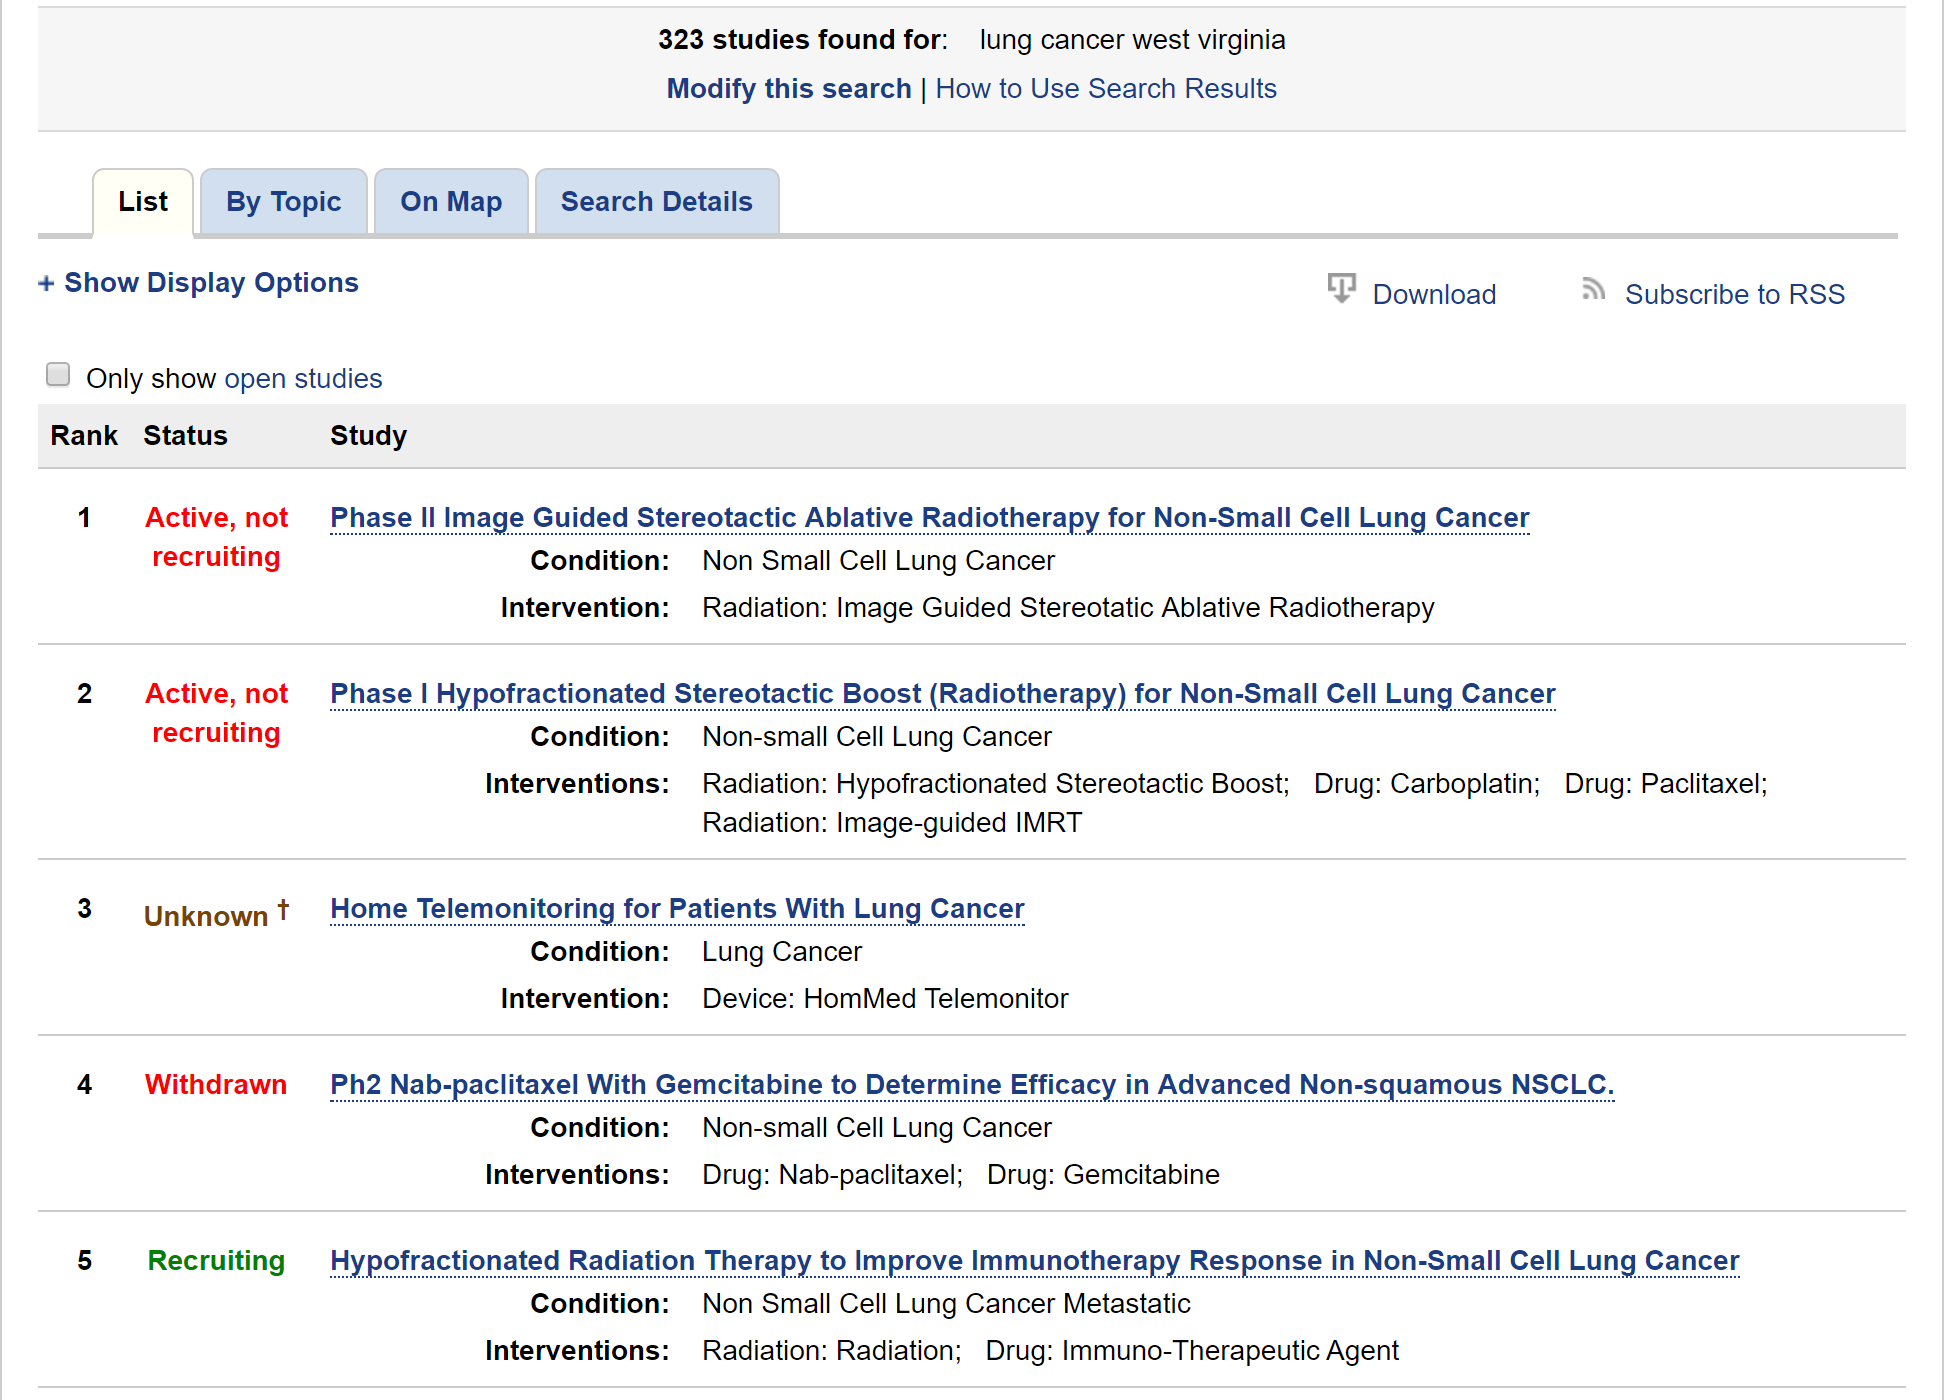 """a search for """"West Virginia"""" and """"lung cancer"""" on ClinicalTrials.gov"""